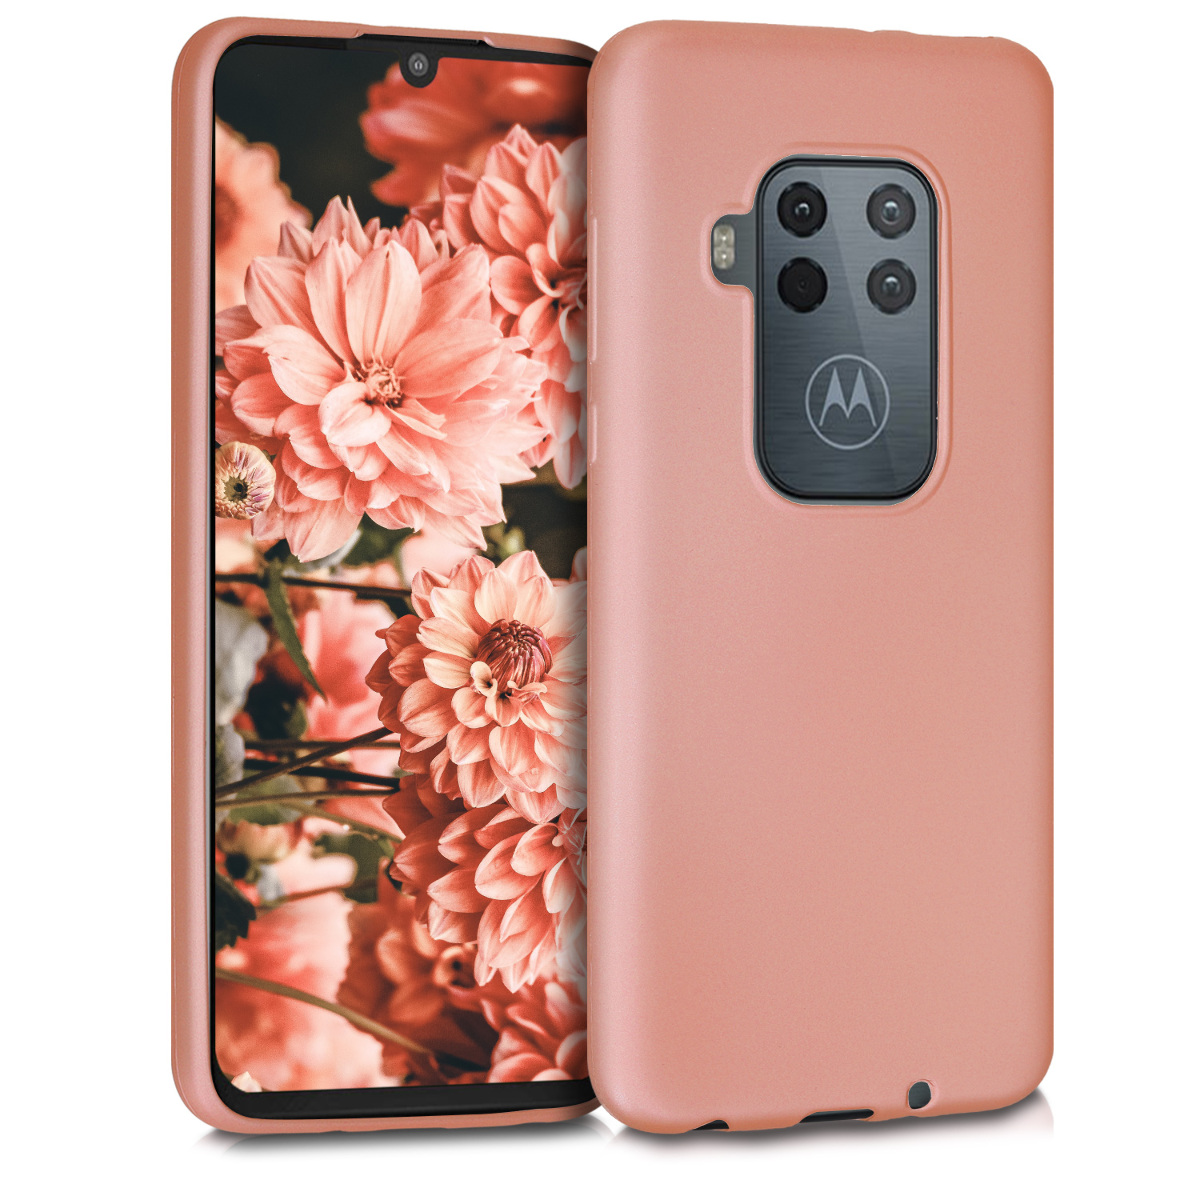 KW Θήκη Σιλικόνης Motorola One Zoom - Metallic Rose Gold (50807.31)